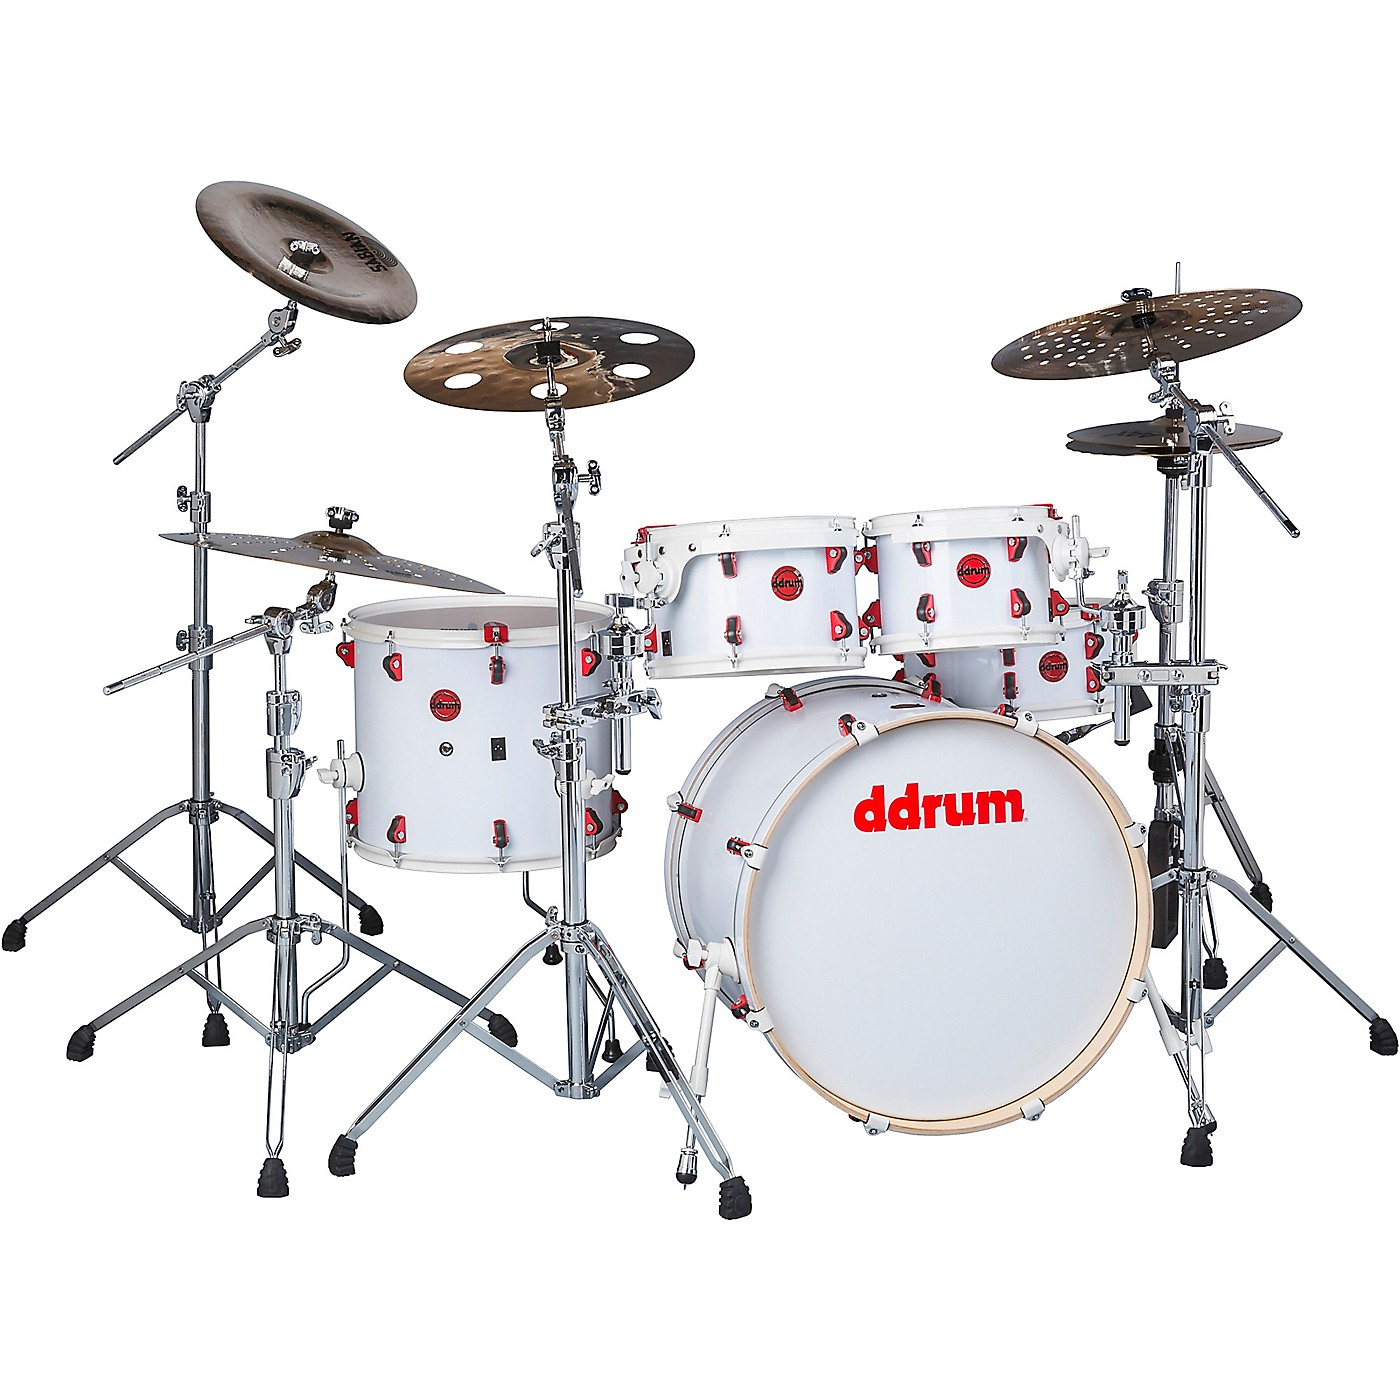 ddrum Hybrid Player 5-Piece Acoustic-Electric Shell Pack thumbnail